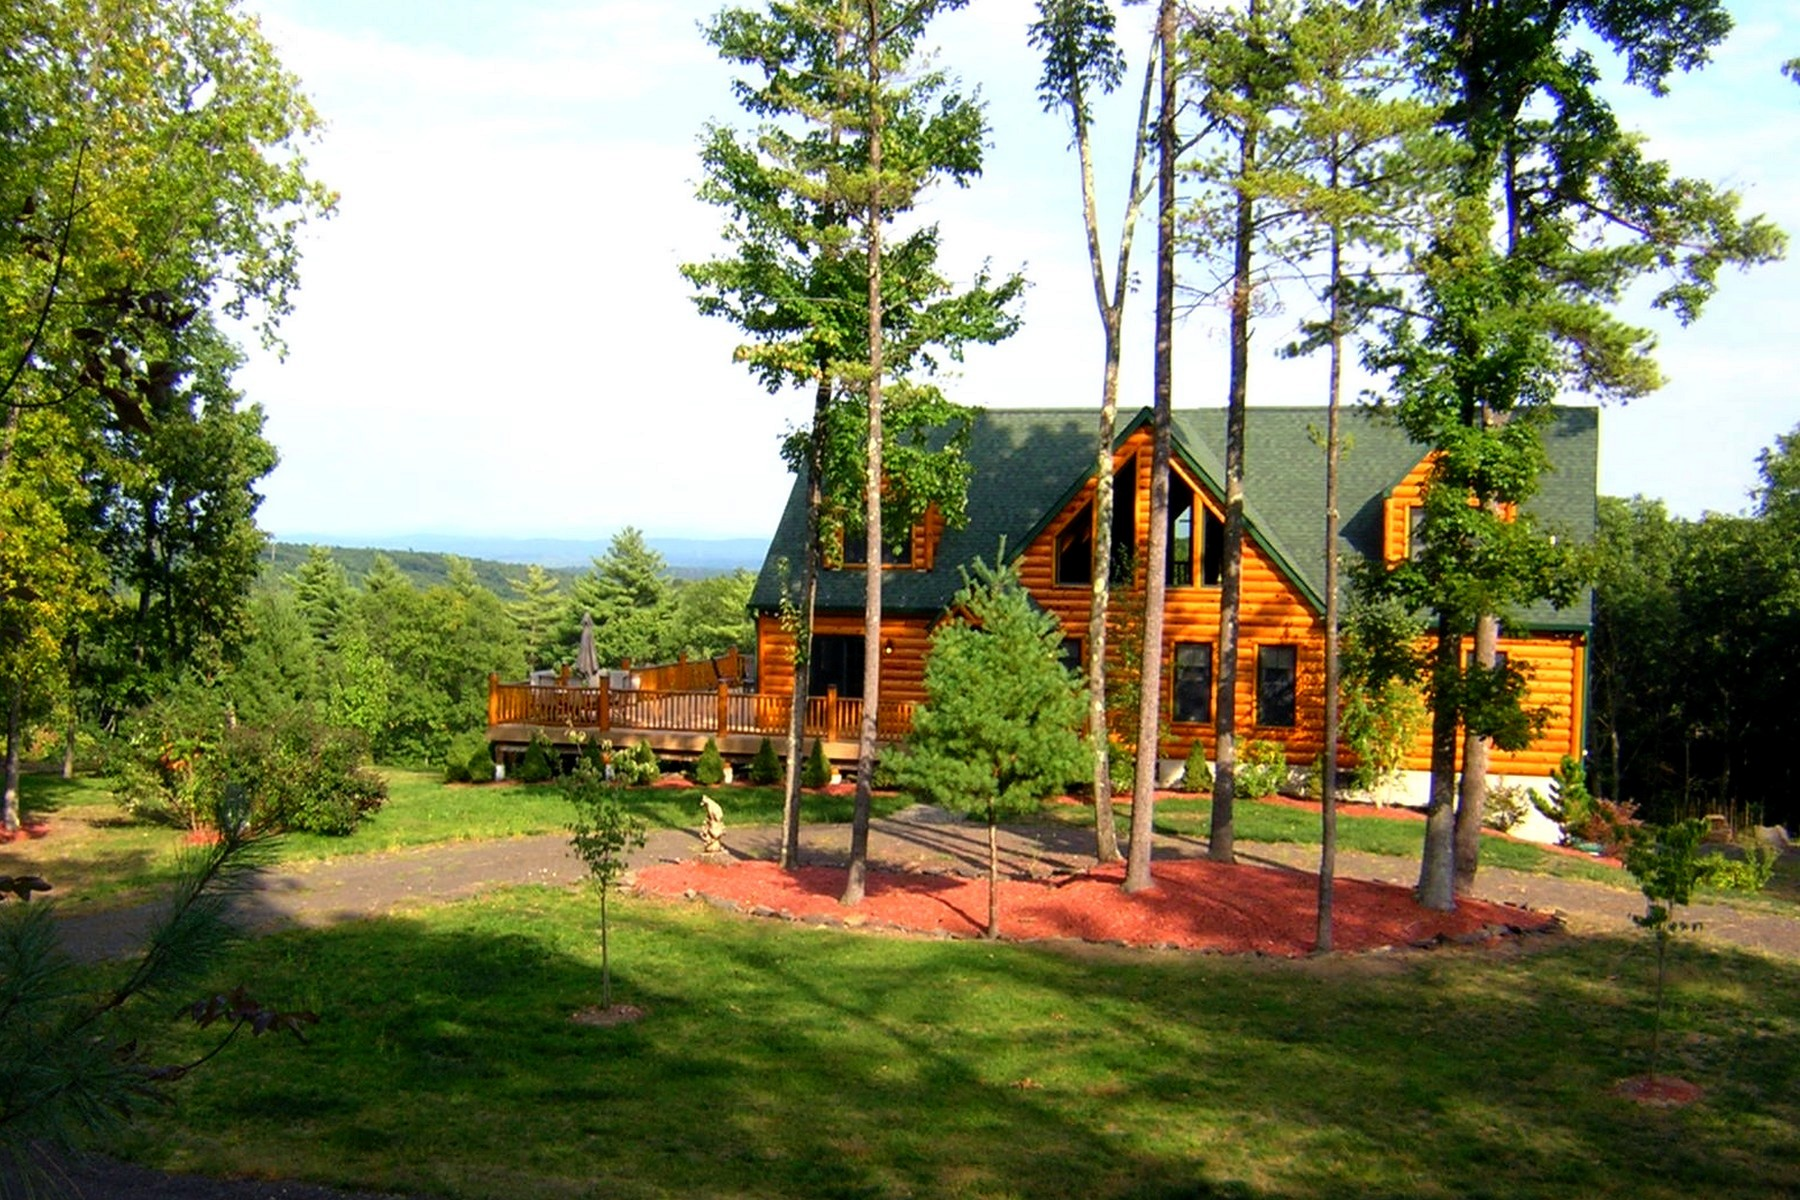 Single Family Home for Sale at Serene Mountaintop Setting 251 East Ridge Drive Kingston, New York 12401 United States